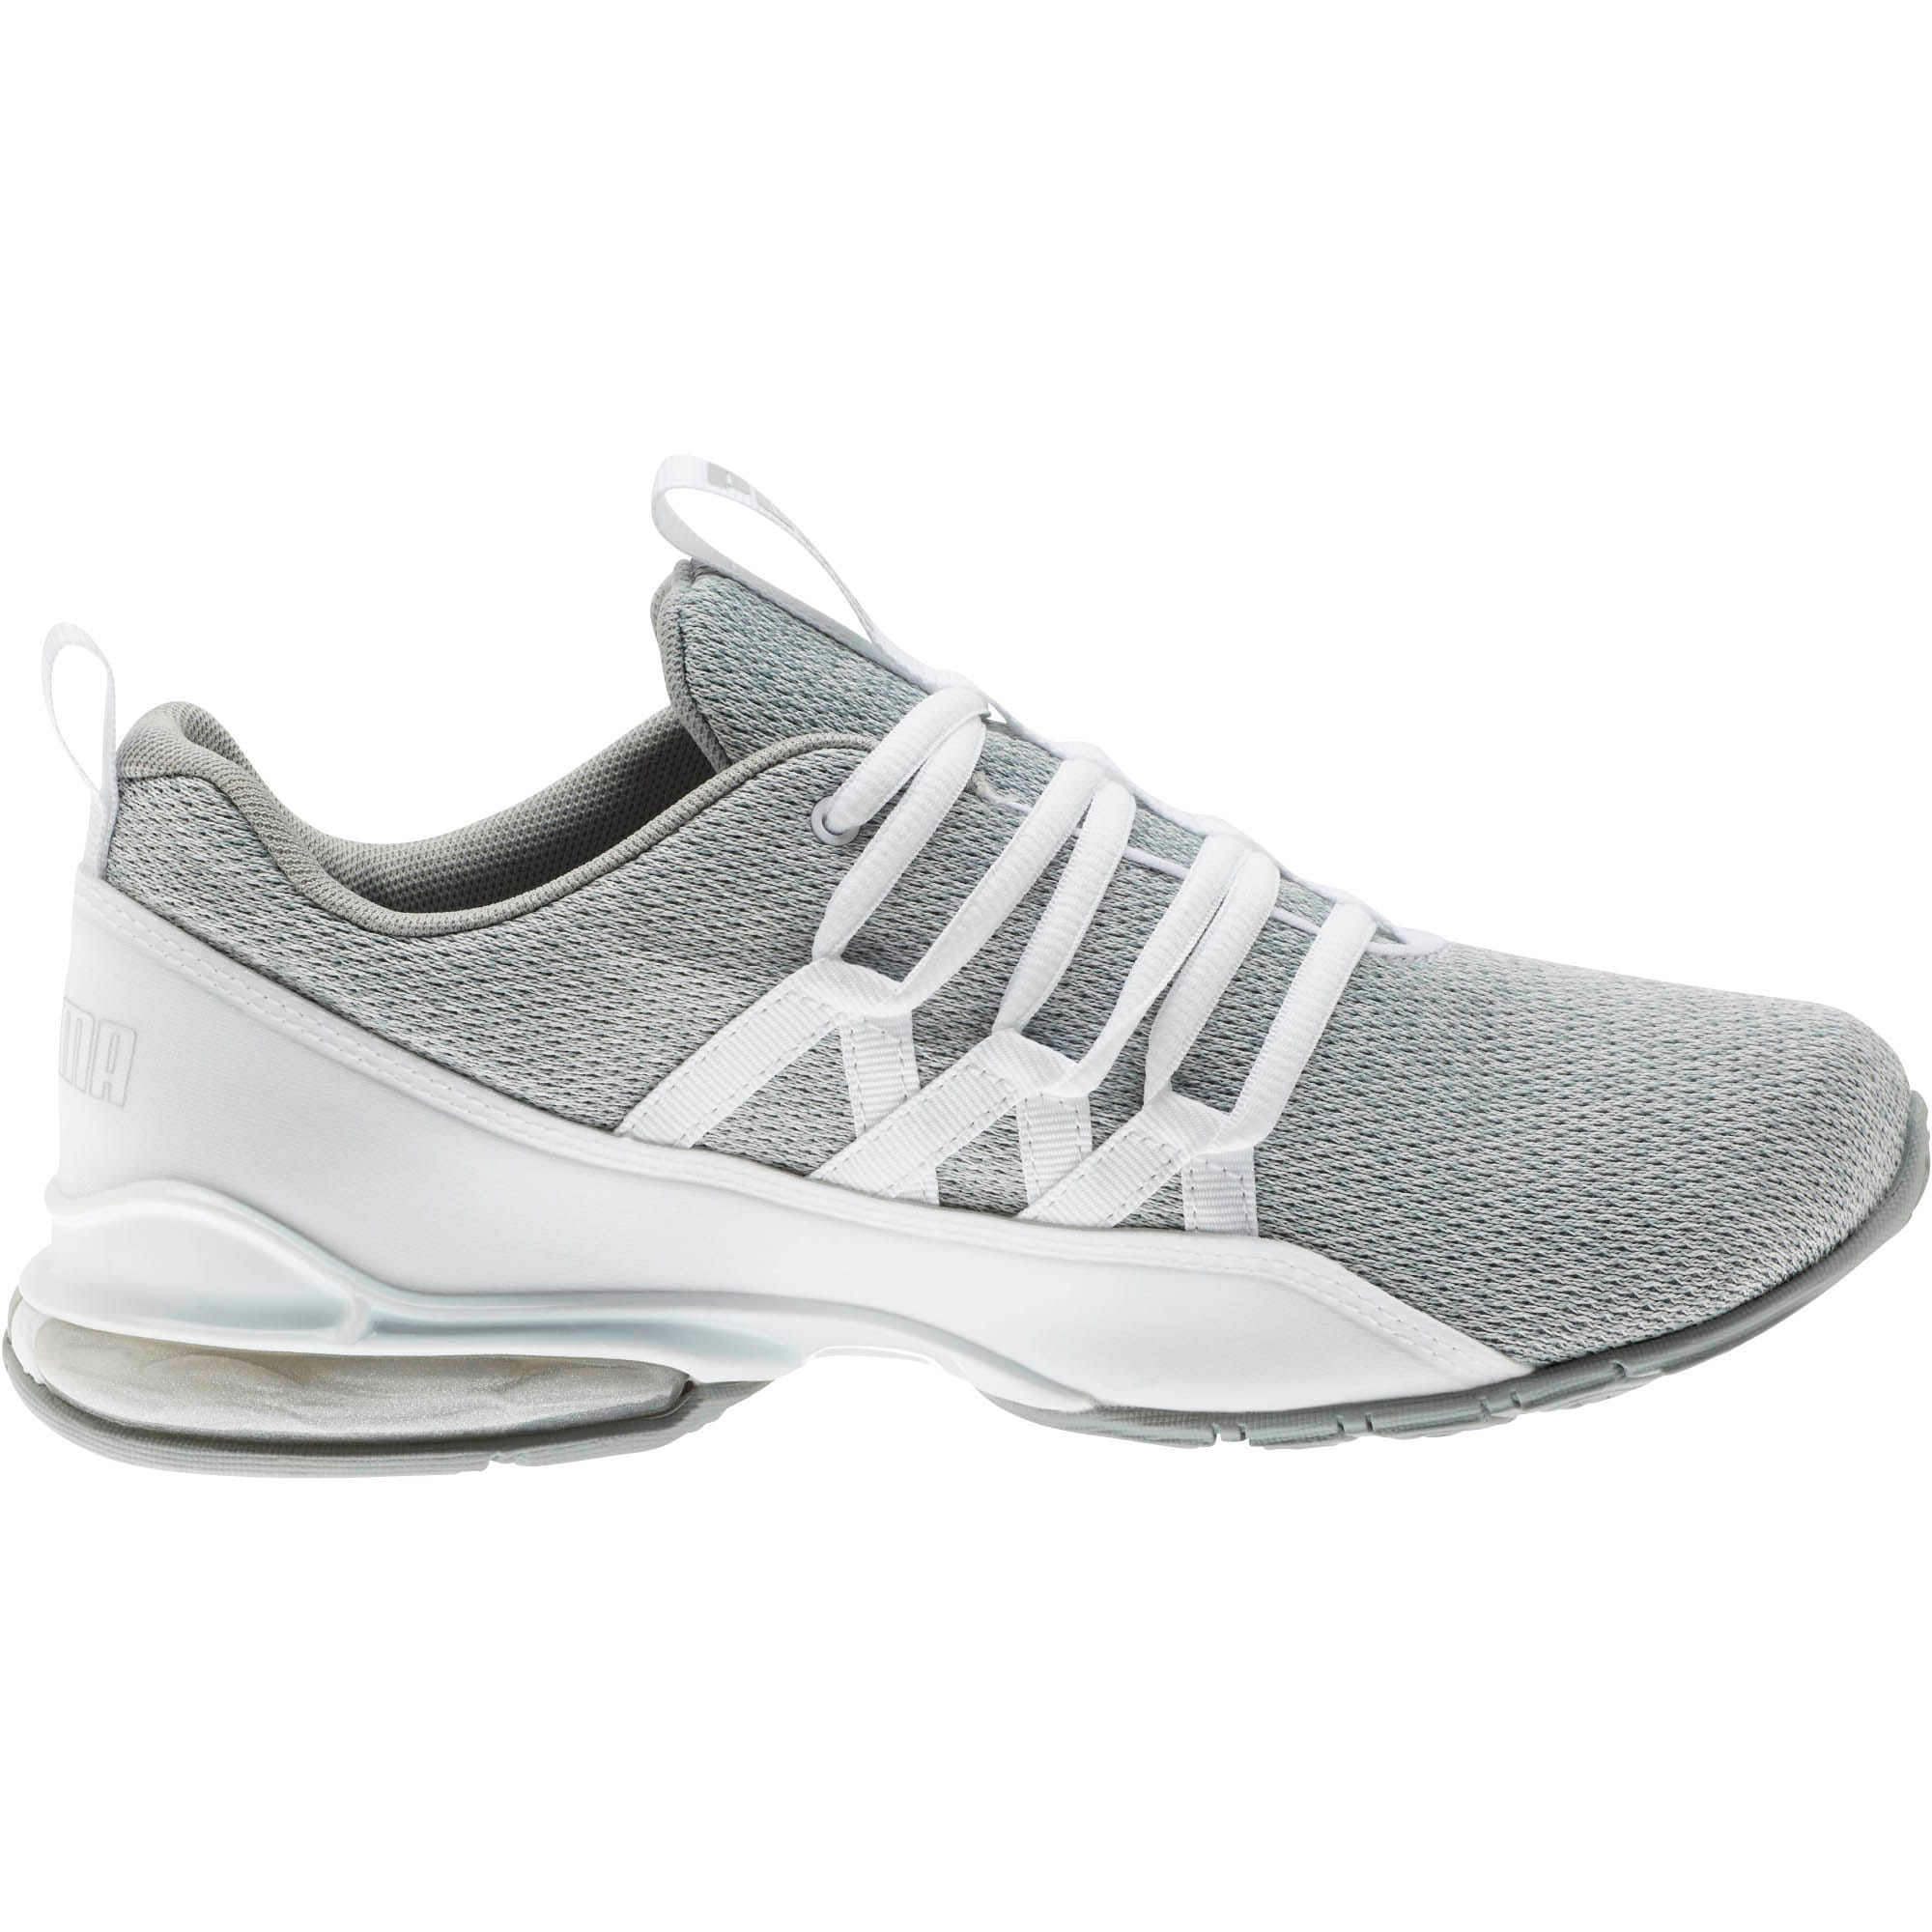 Thumbnail 4 of Riaze Prowl Women's Training Shoes, Puma White-Puma Silver, medium